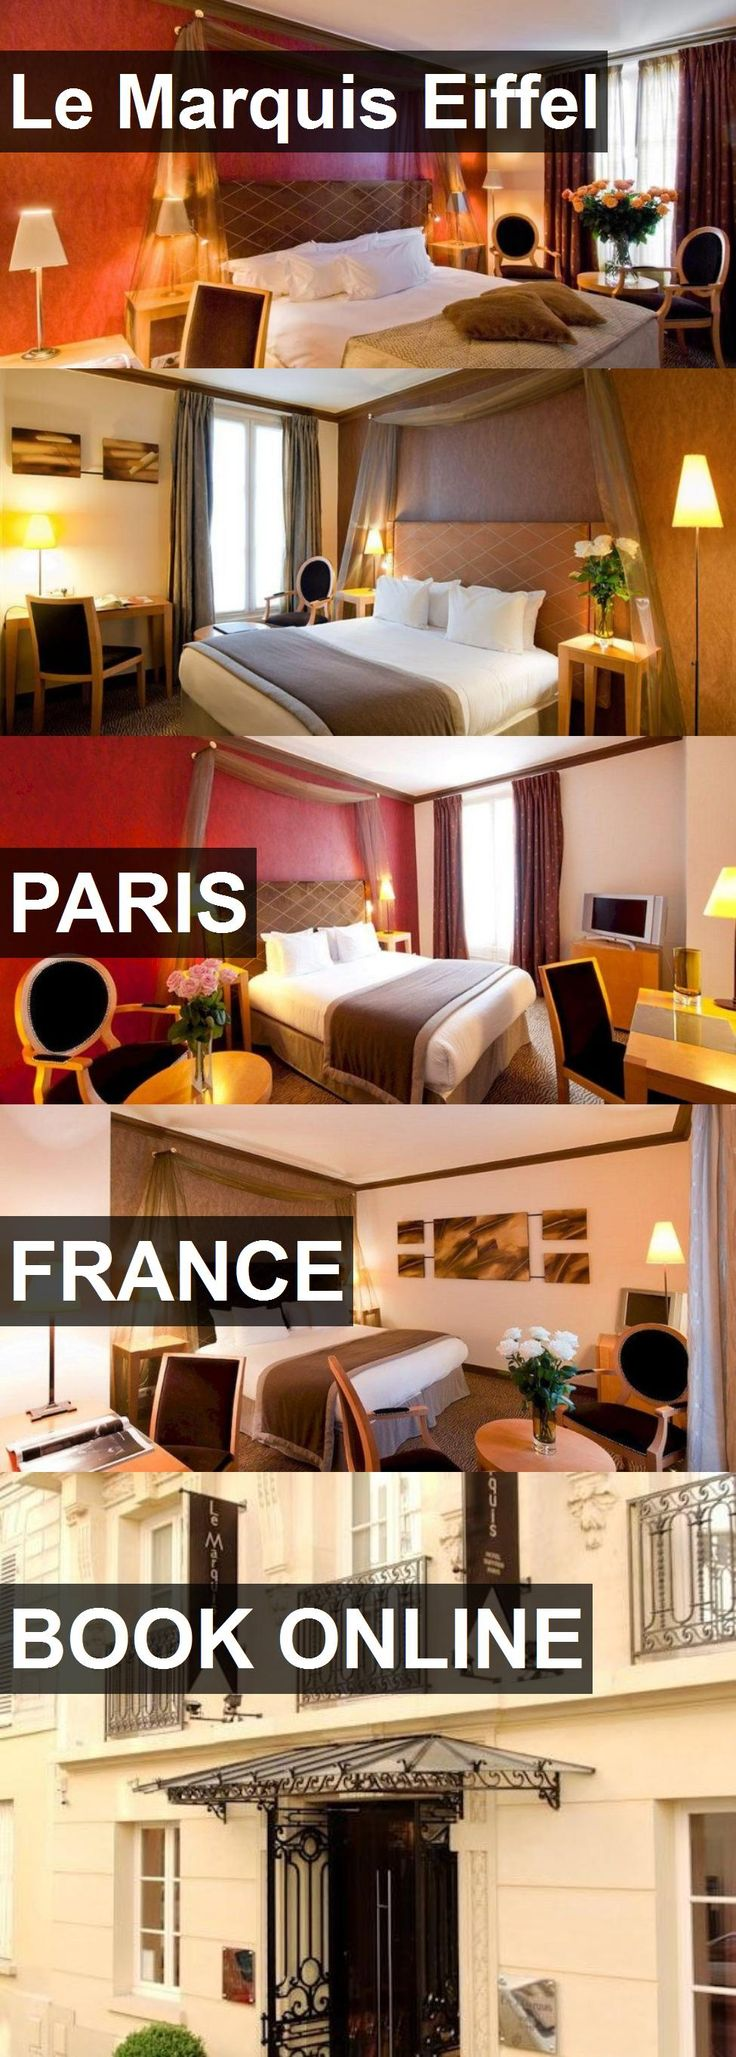 Hotel Le Marquis Eiffel in Paris, France. For more information, photos, reviews and best prices please follow the link. #France #Paris #travel #vacation #hotel